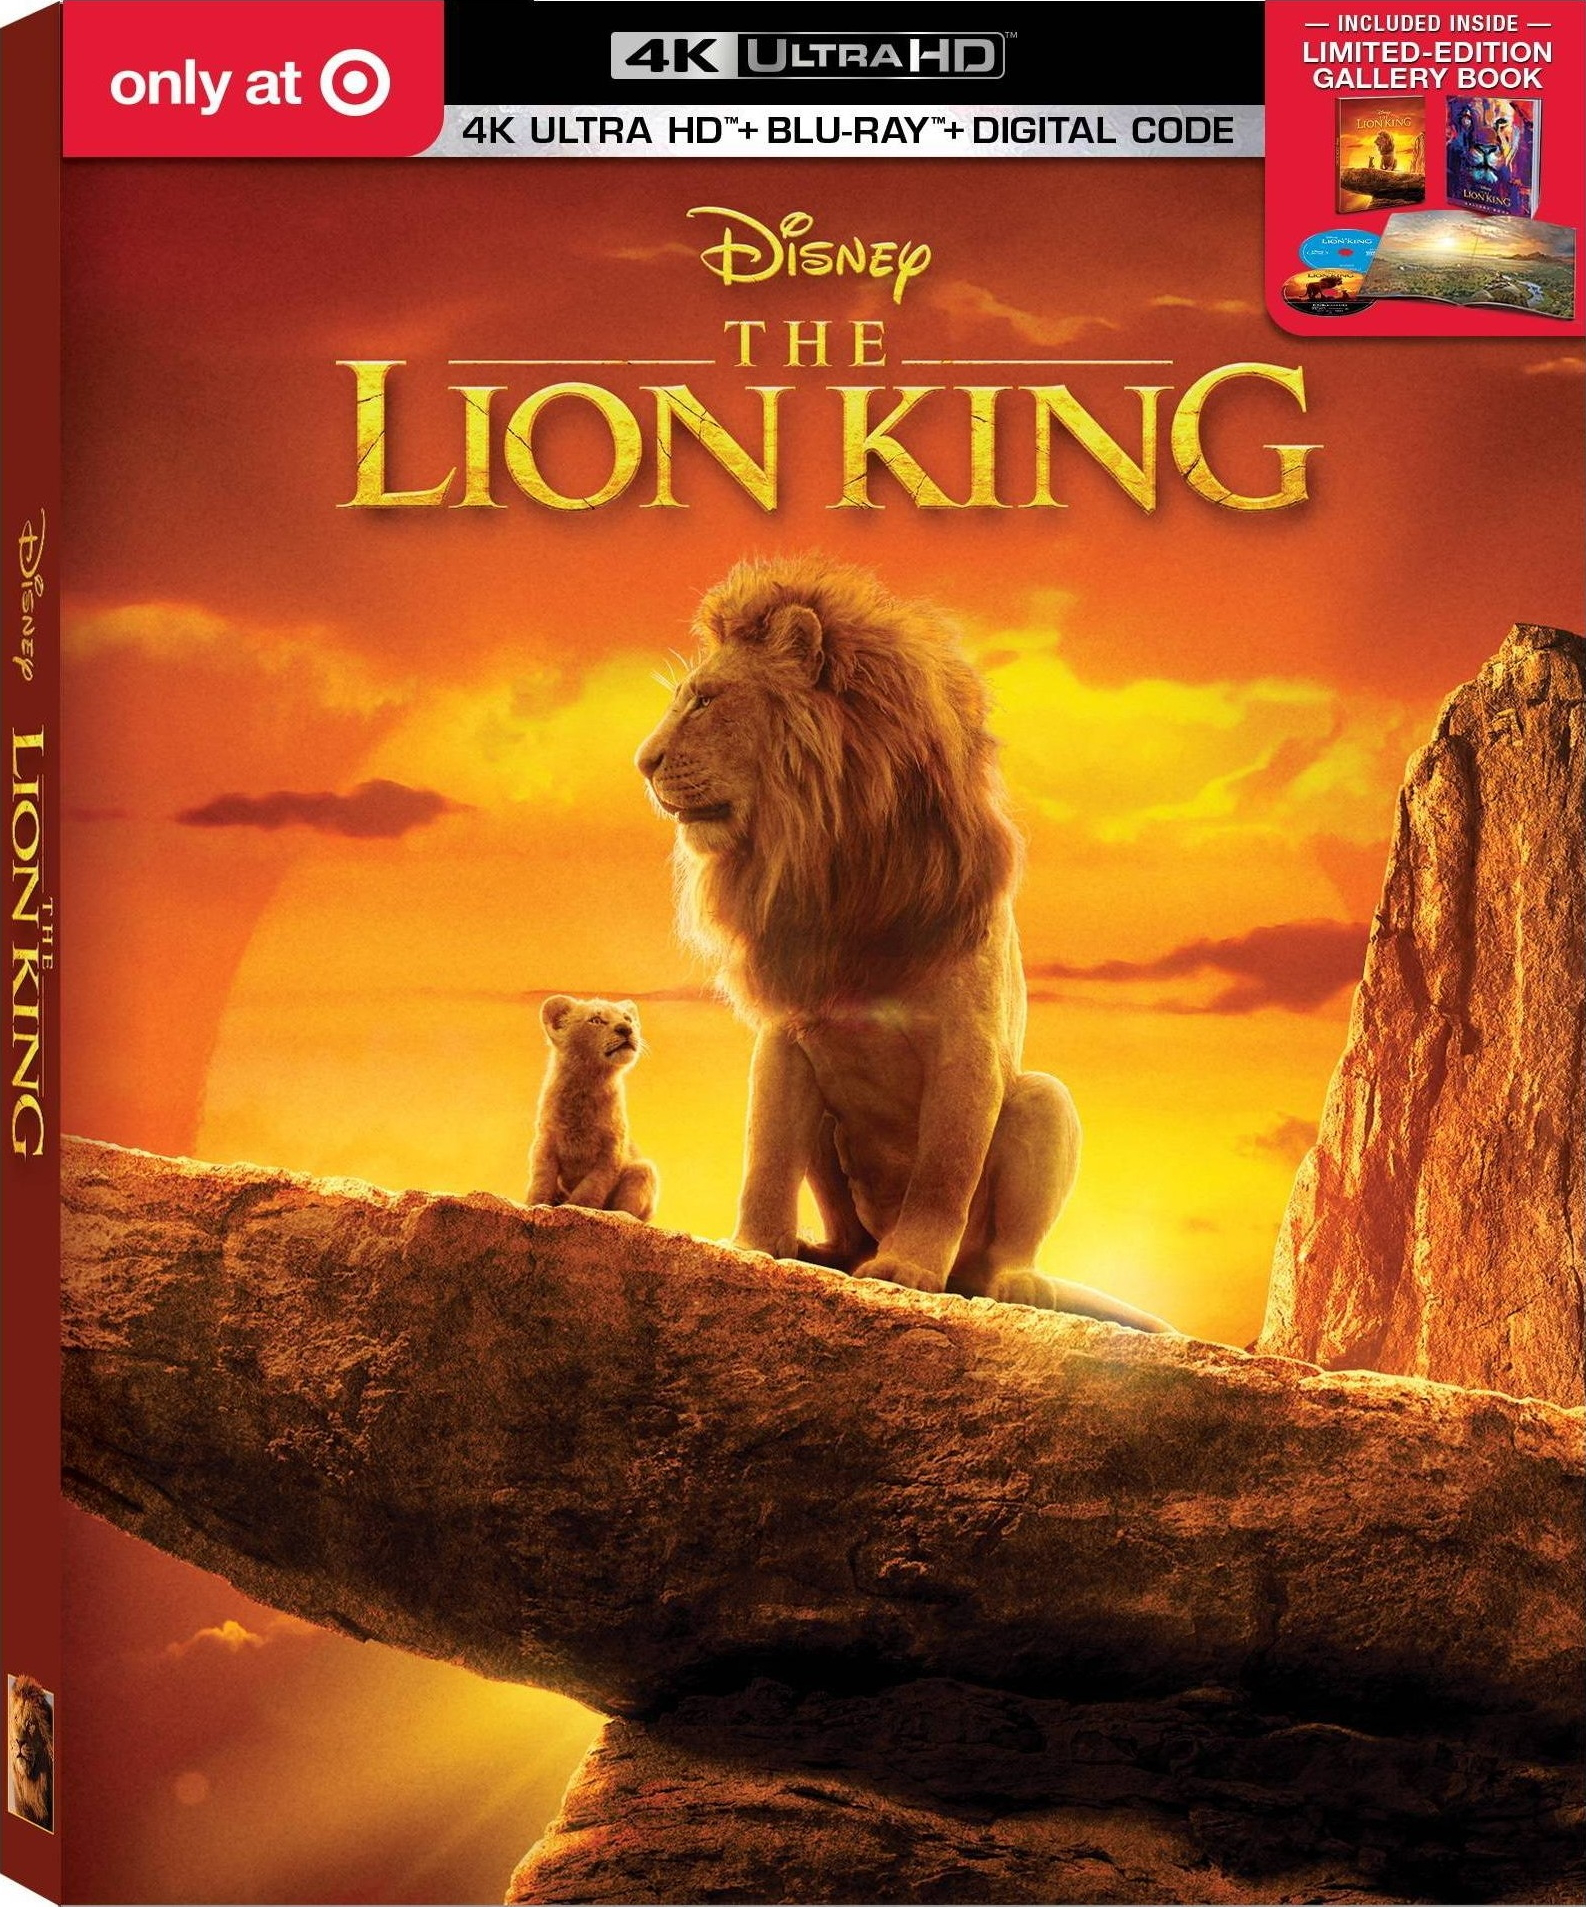 The Lion King (2019) poster image